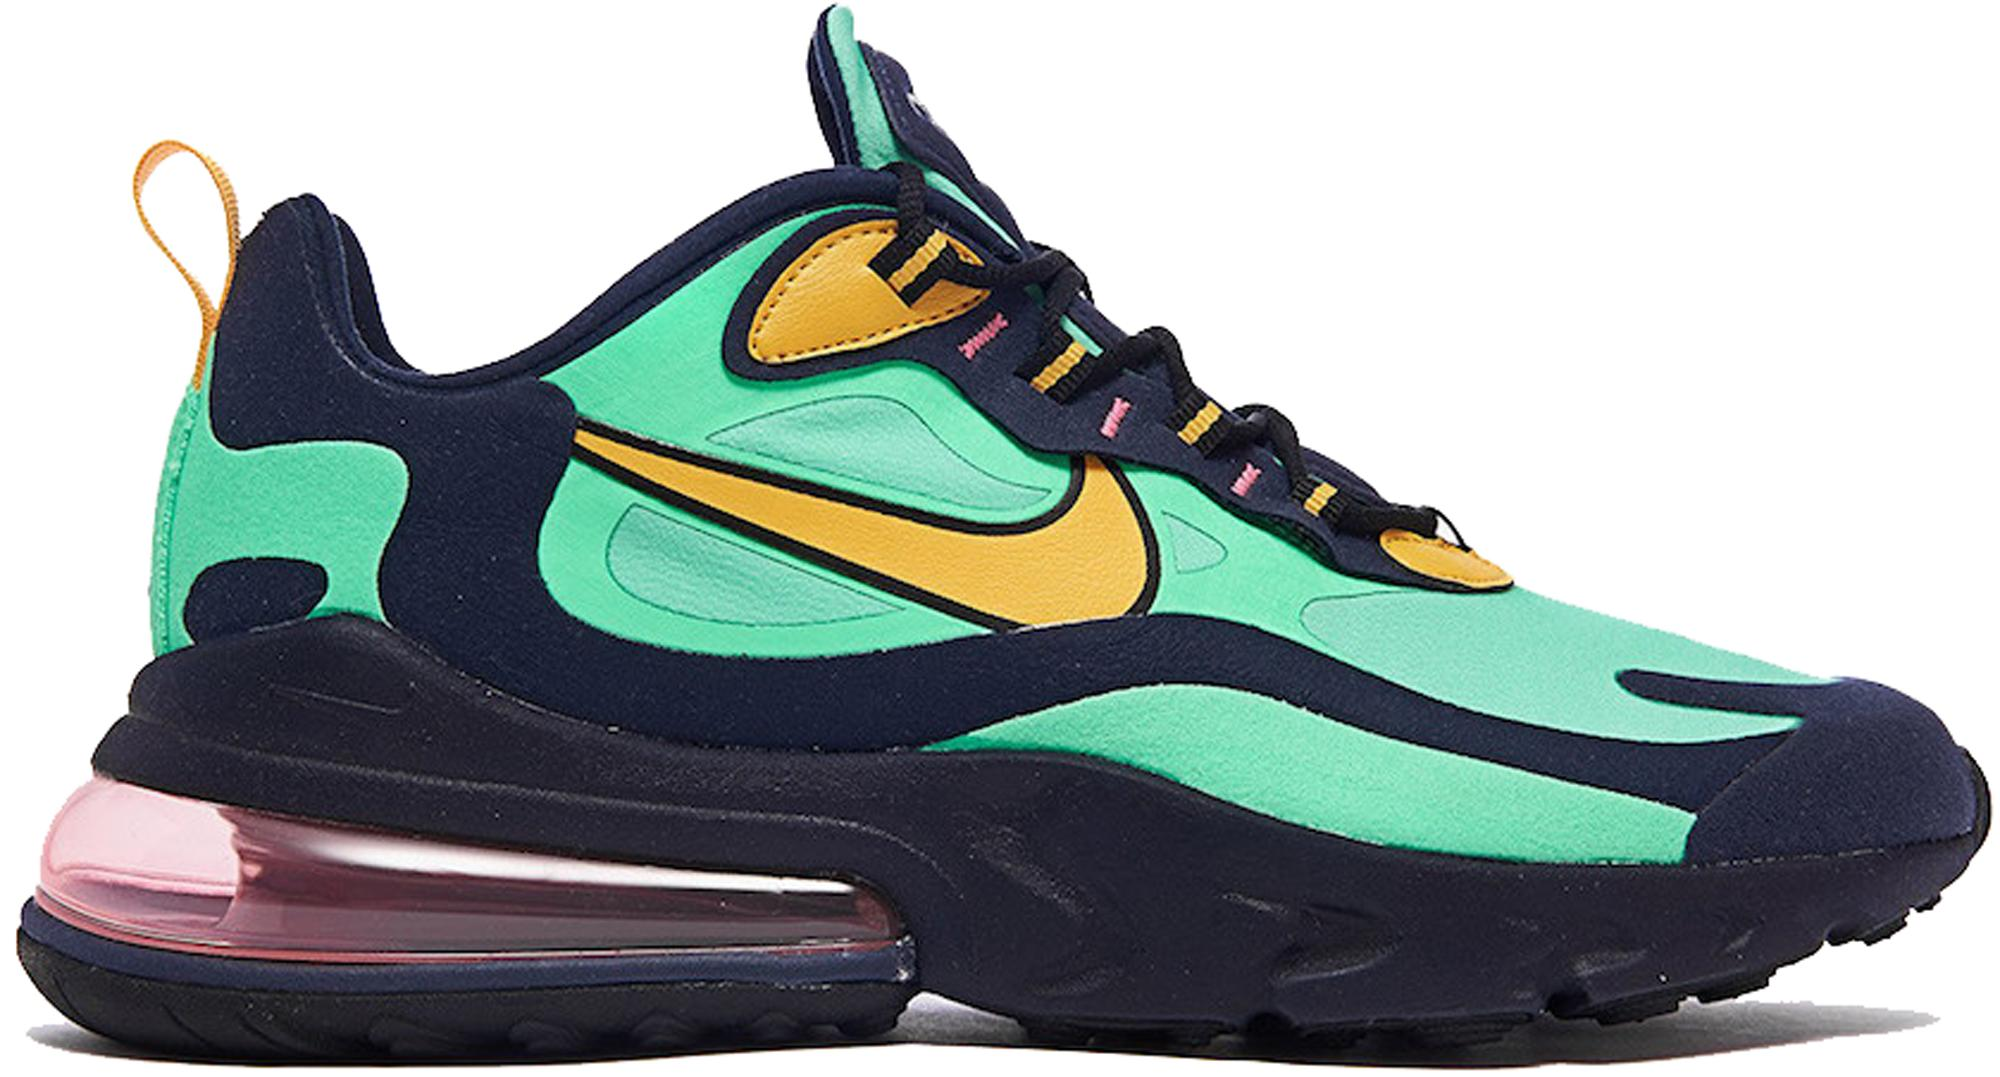 outlet store 17066 2d82f Men's Air Max 270 React Electro Green Yellow Ochre Obsidian